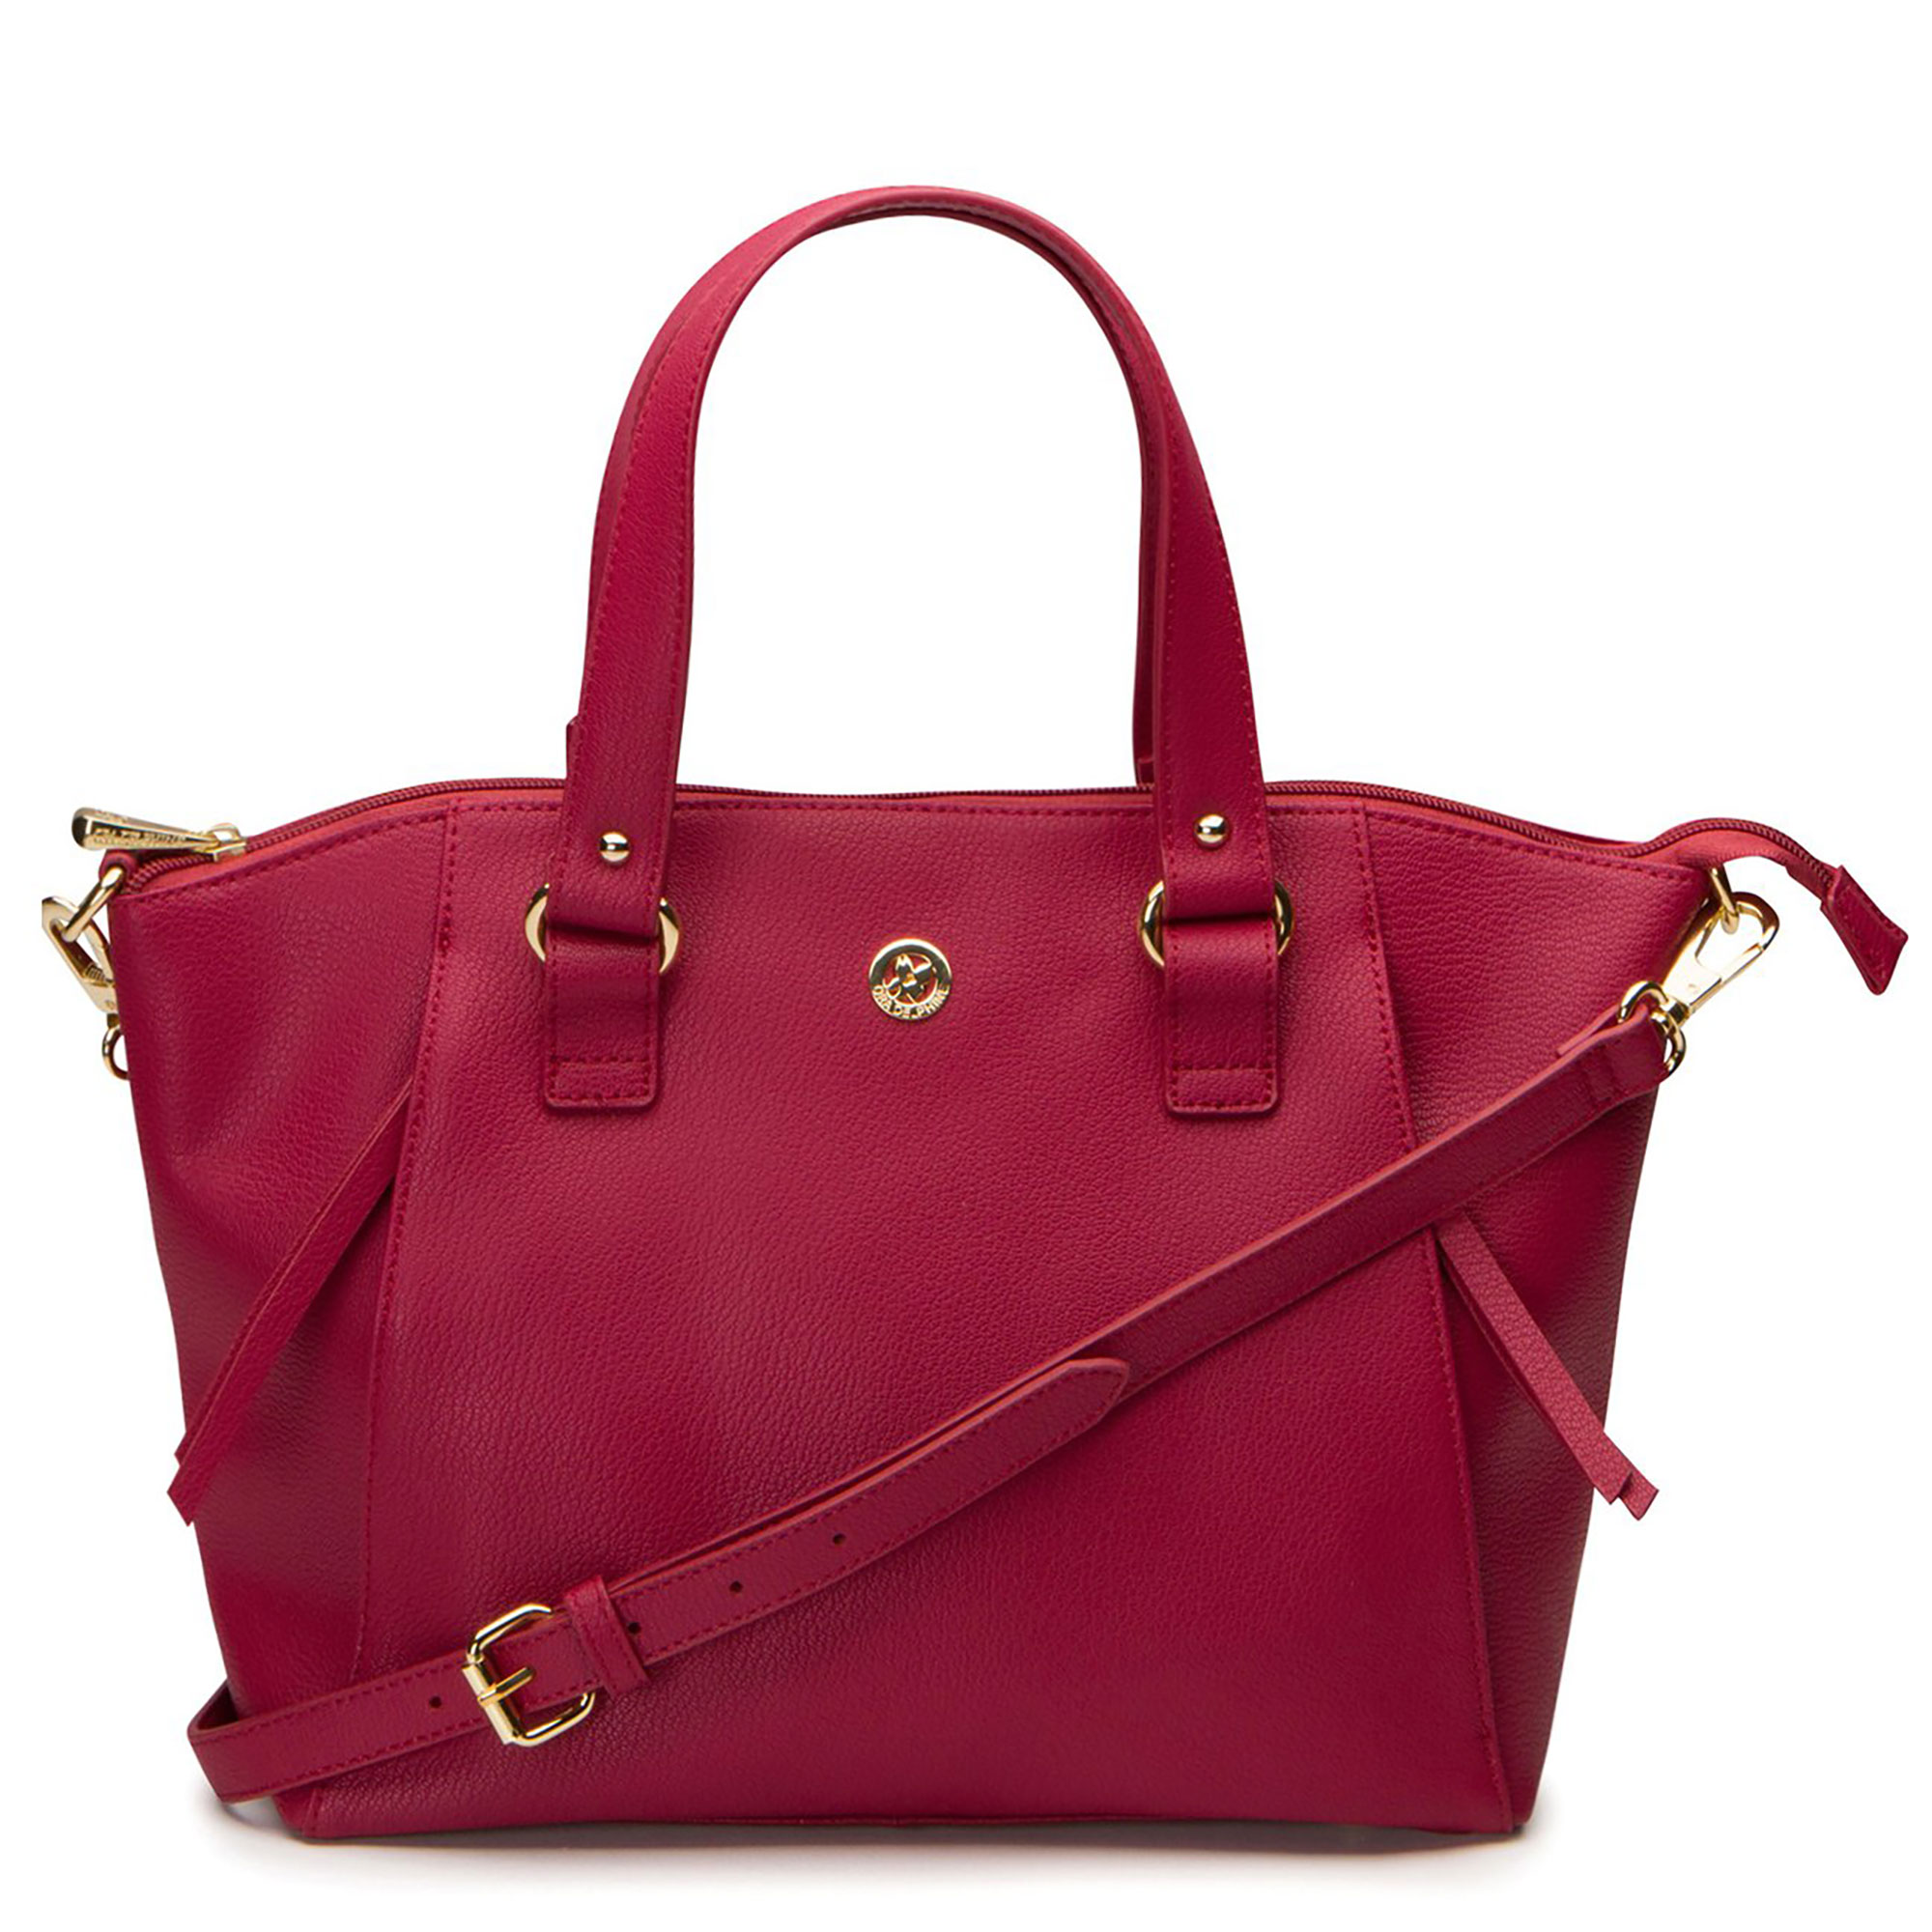 Women's History Month Gallery - The accessories brand believes every woman should be able to dress for the job she wants, and for every bag purchased between Friday, March 8, and Monday, March 11, it will donate one to Dress For Success. $395, oradelphine.com